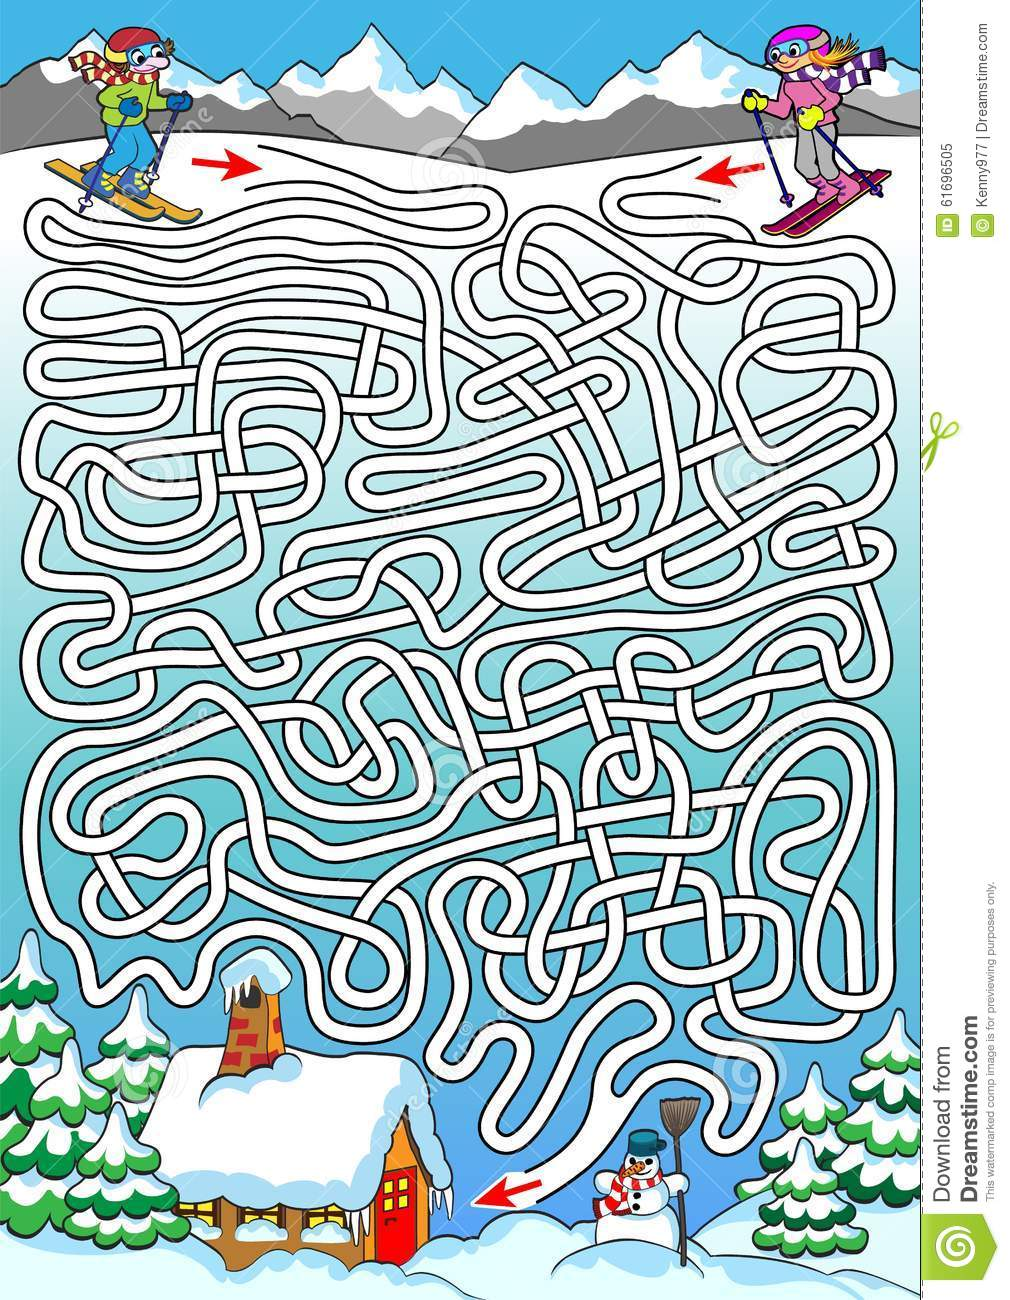 Skiing - Labyrinth For Kids (hard). Stock Vector